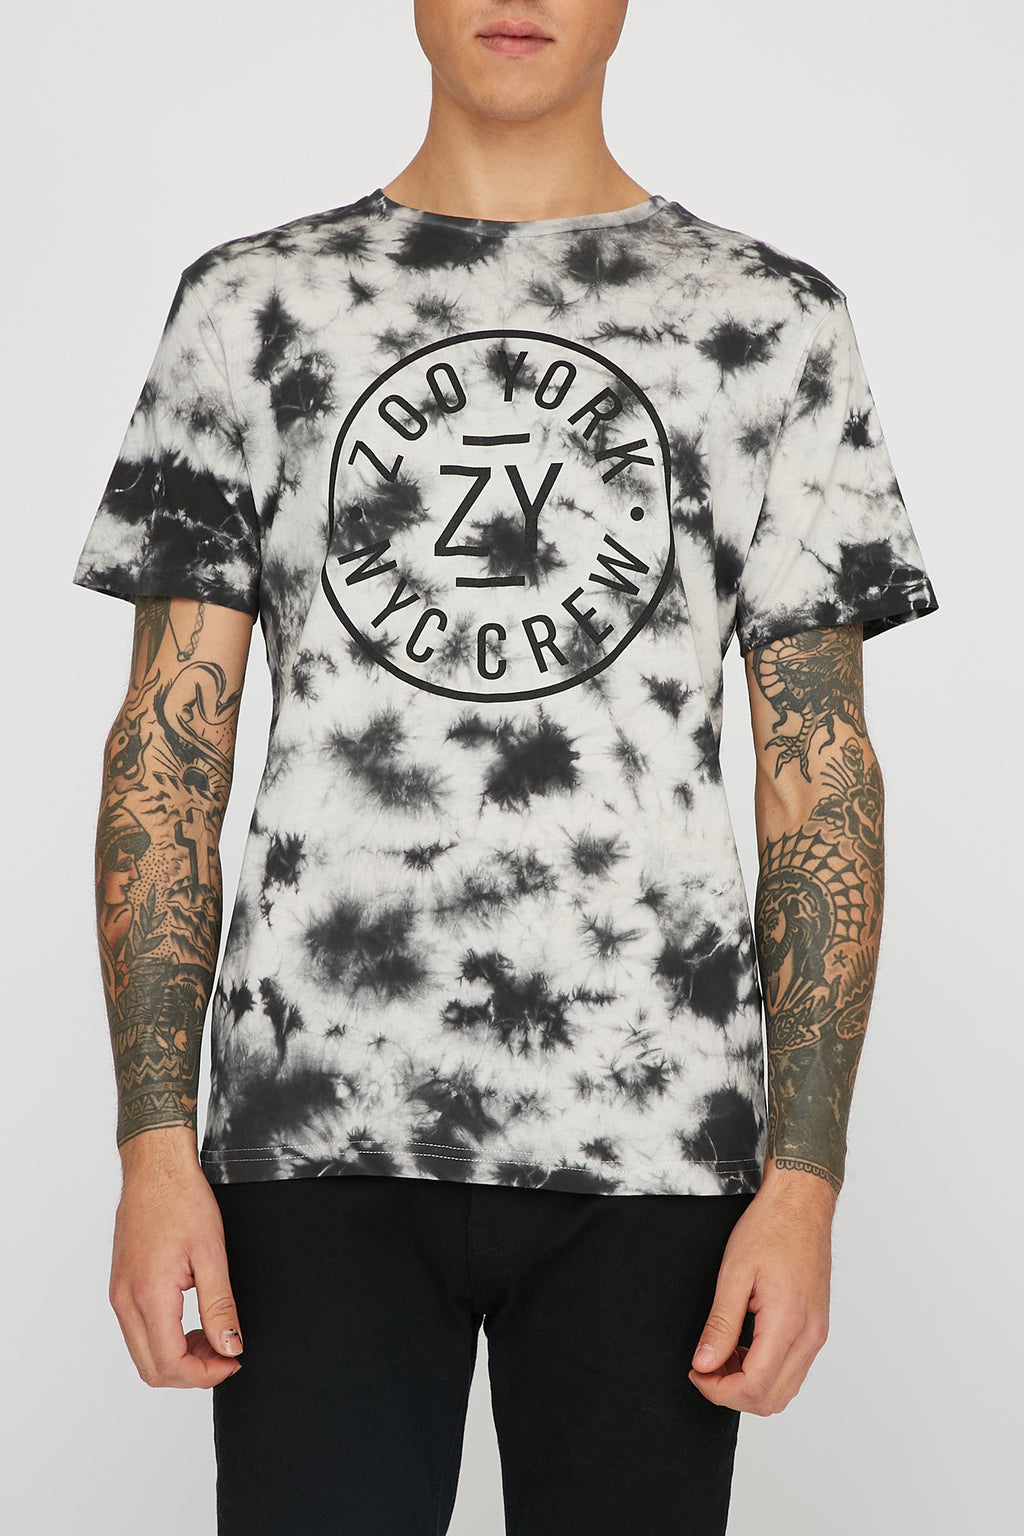 Zoo York Mens NYC Crew Tie Dye T-Shirt